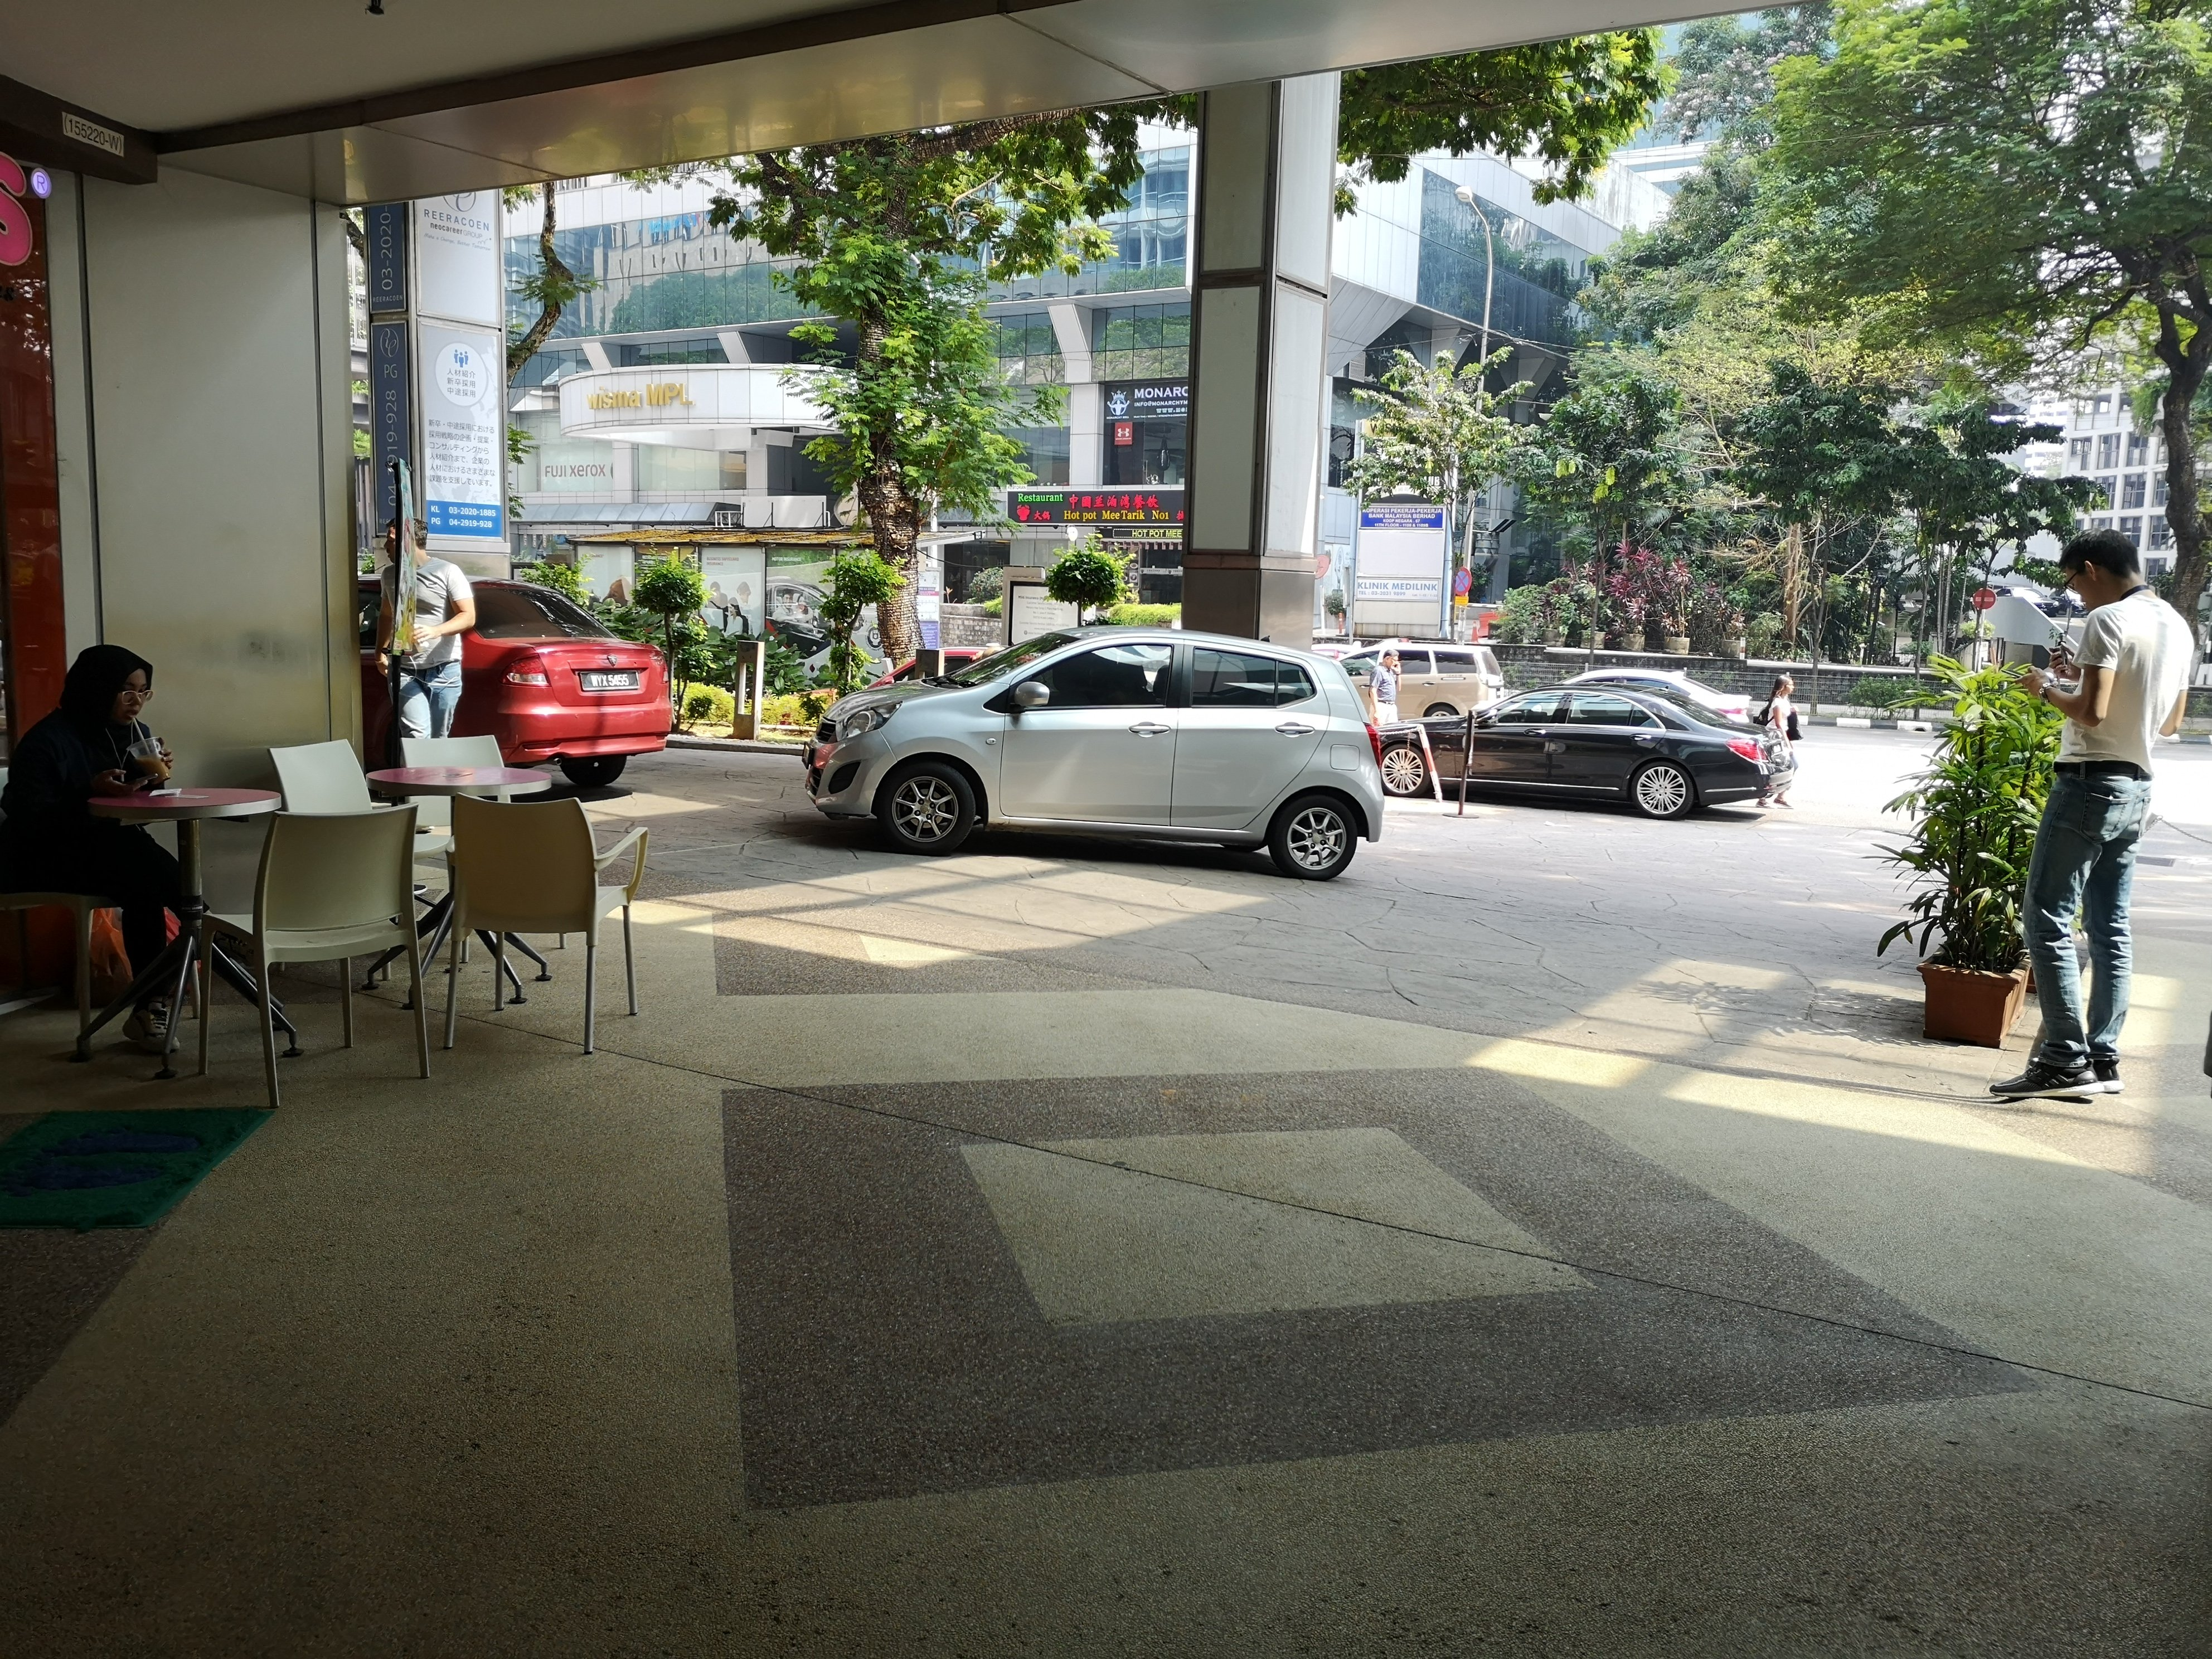 The Weld Retail Space For Rent For rental @RM 6356 By BENSON TING